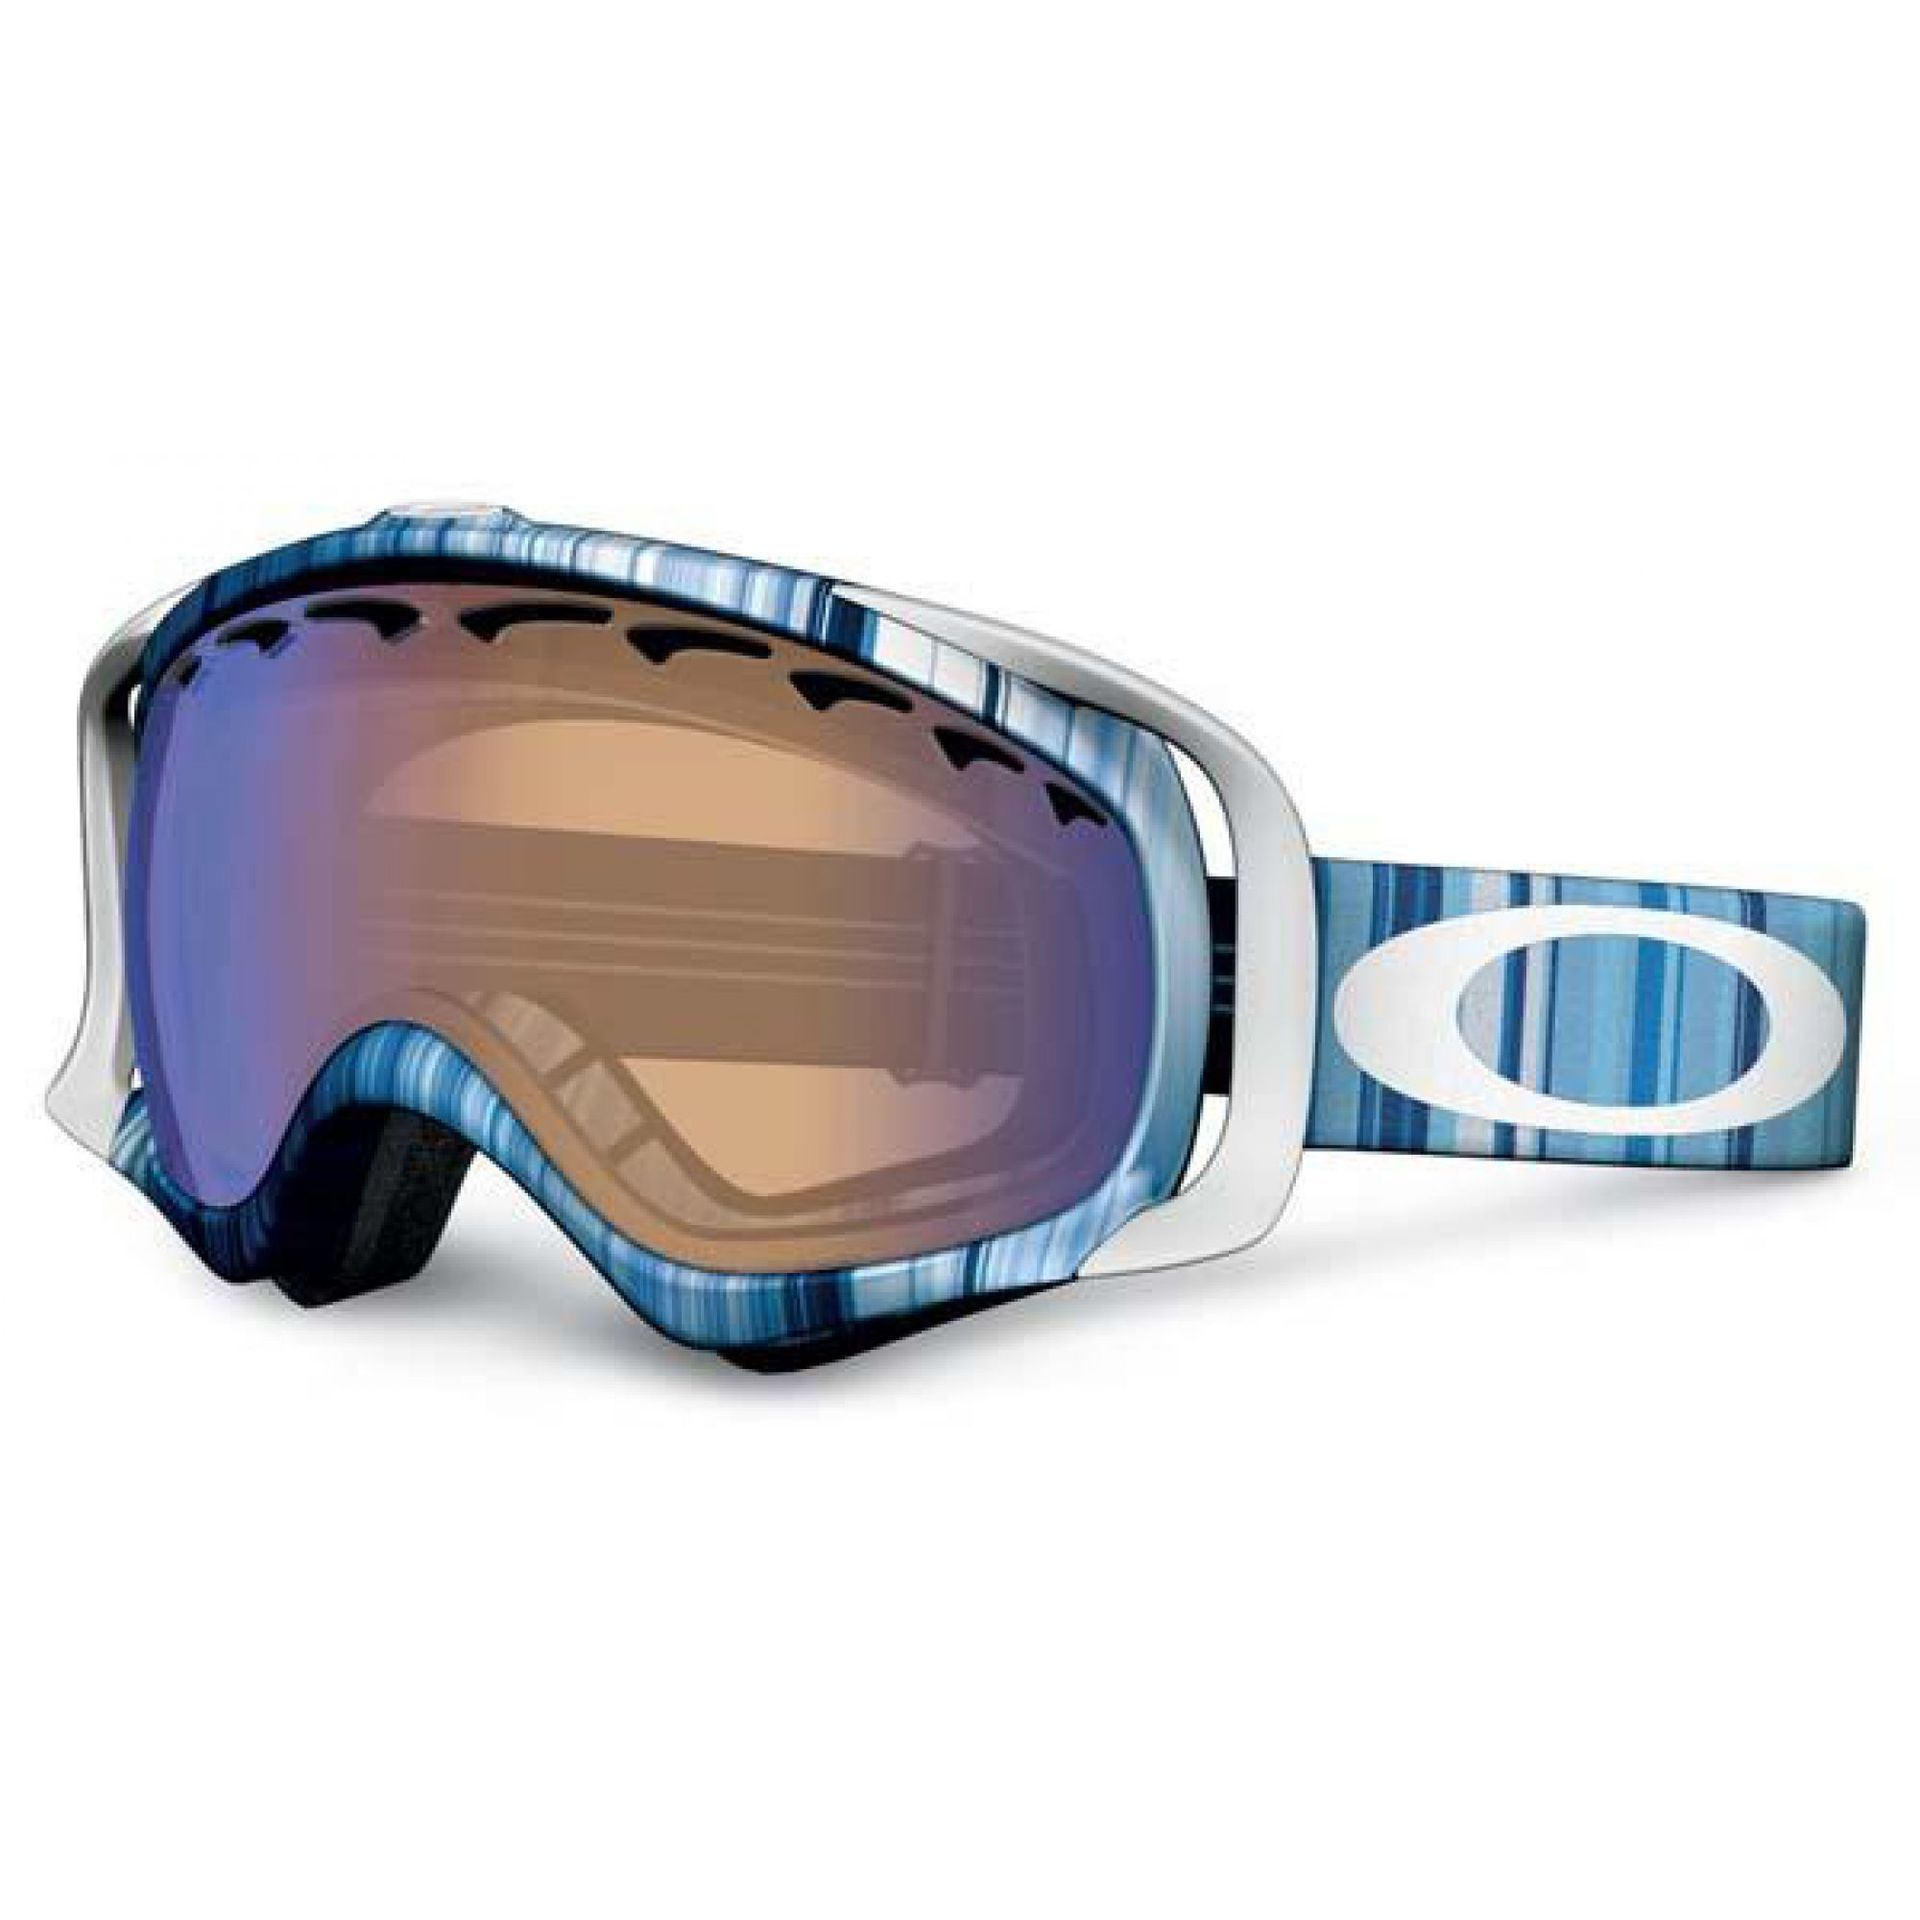 GOGLE OAKLEY CROWBAR JP AUCLAIR ALPINE